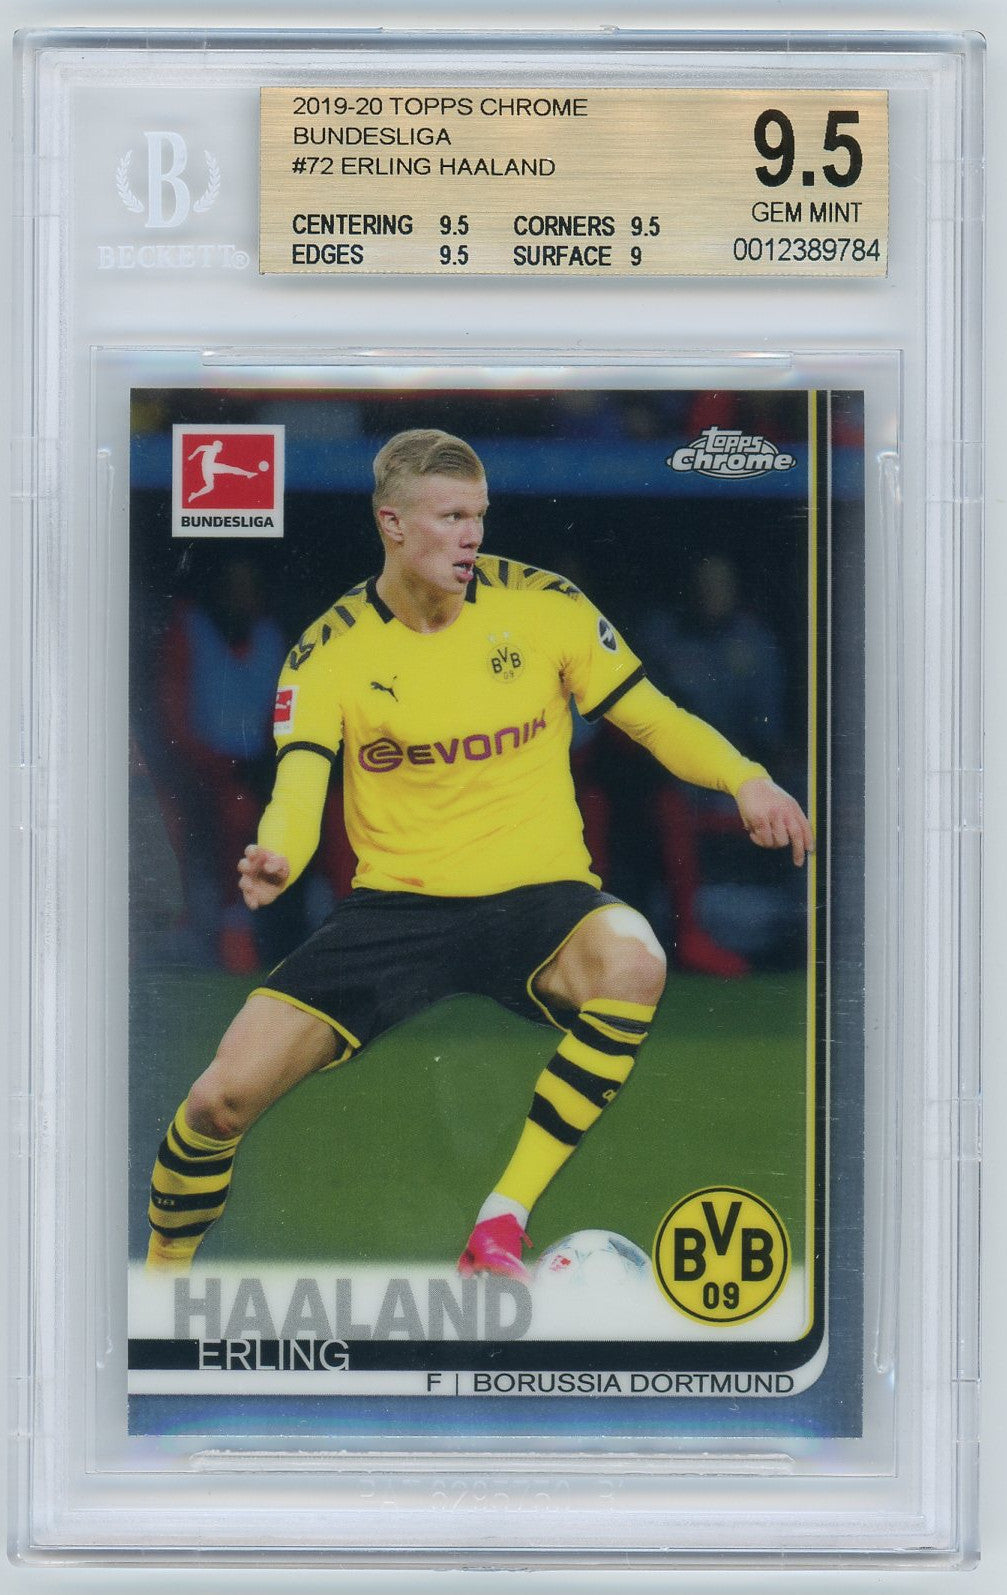 Erling Haaland Borussia Dortmund 2019-20 Topps Chrome Bundesliga Soccer Rookie Card RC #72 Graded BGS 9.5 GEM MINT 1-Powers Sports Memorabilia